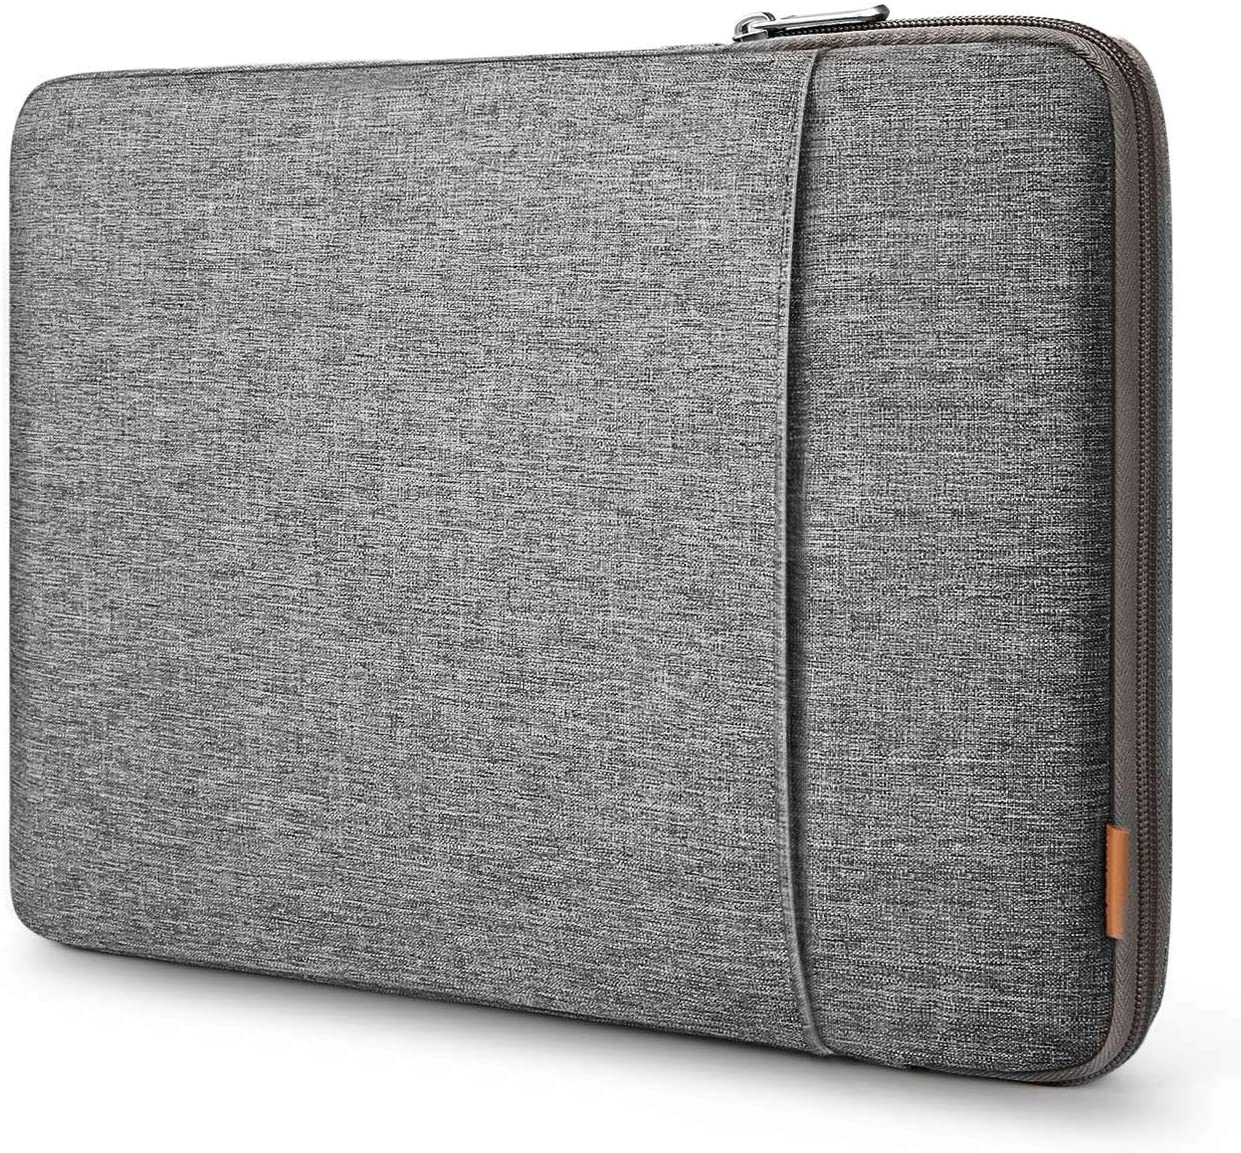 13-13.3 Inch 360 Degree Shockproof Laptop Sleeve Case LB01006-13, Gray - Inateck Backpacks